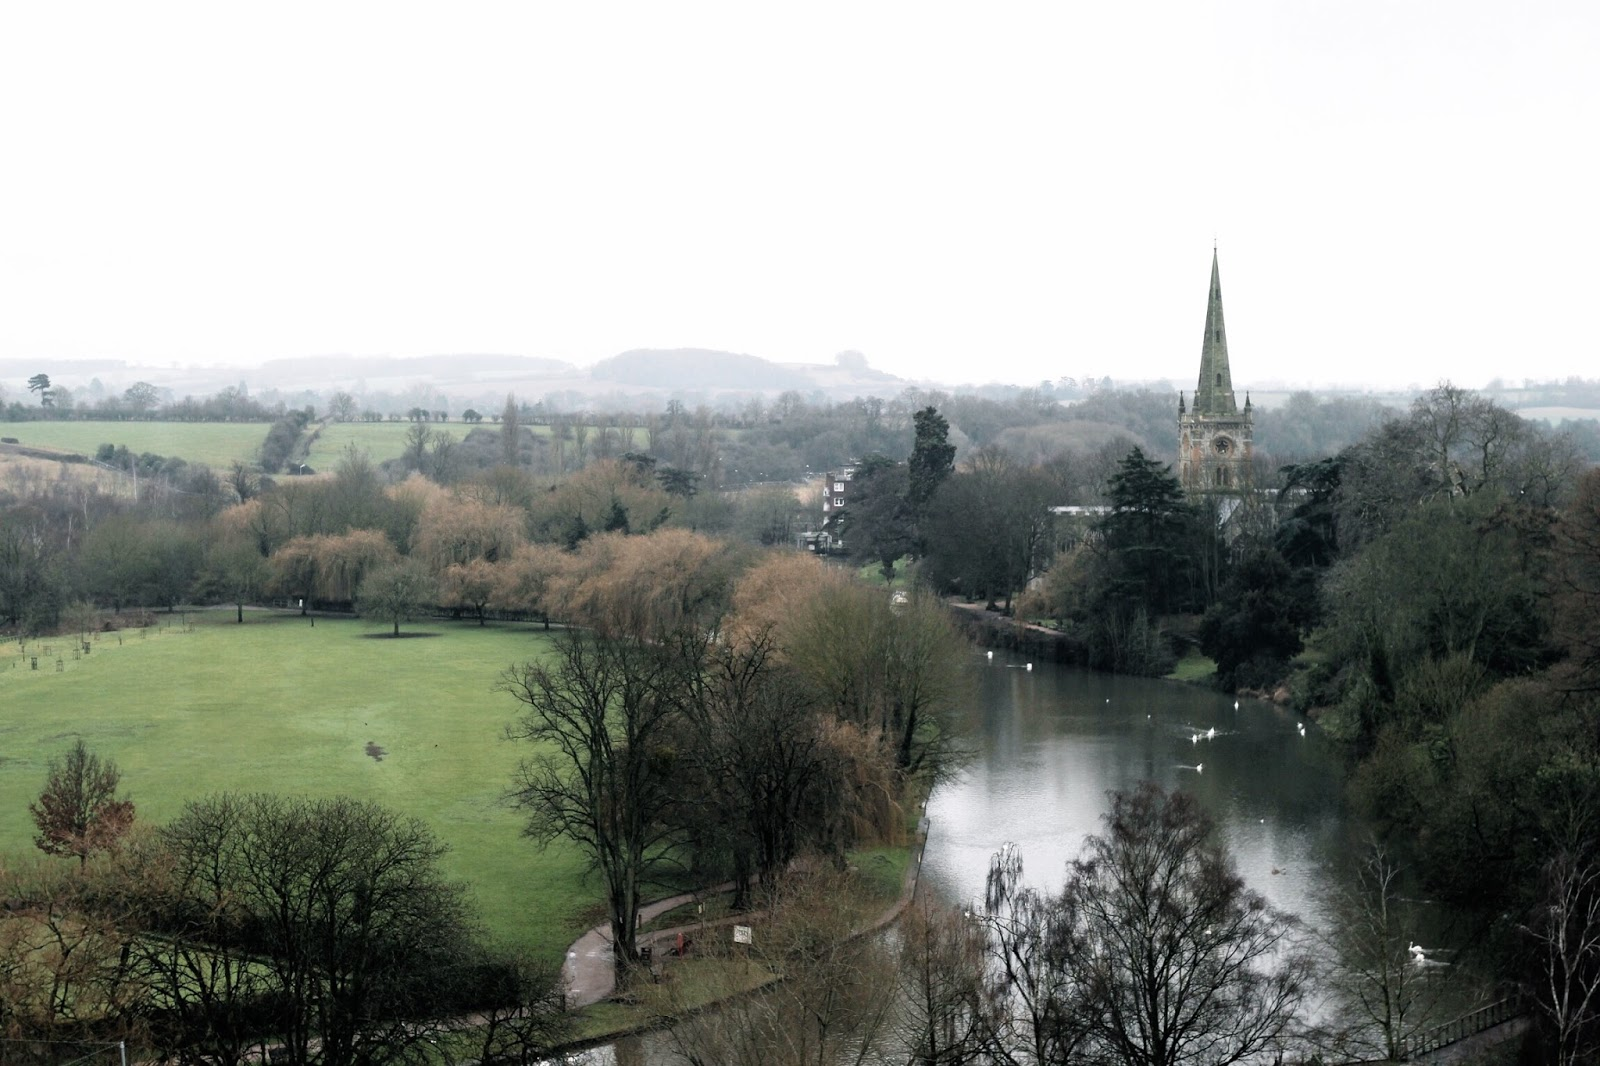 Landscape view of Stratford-upon-Avon